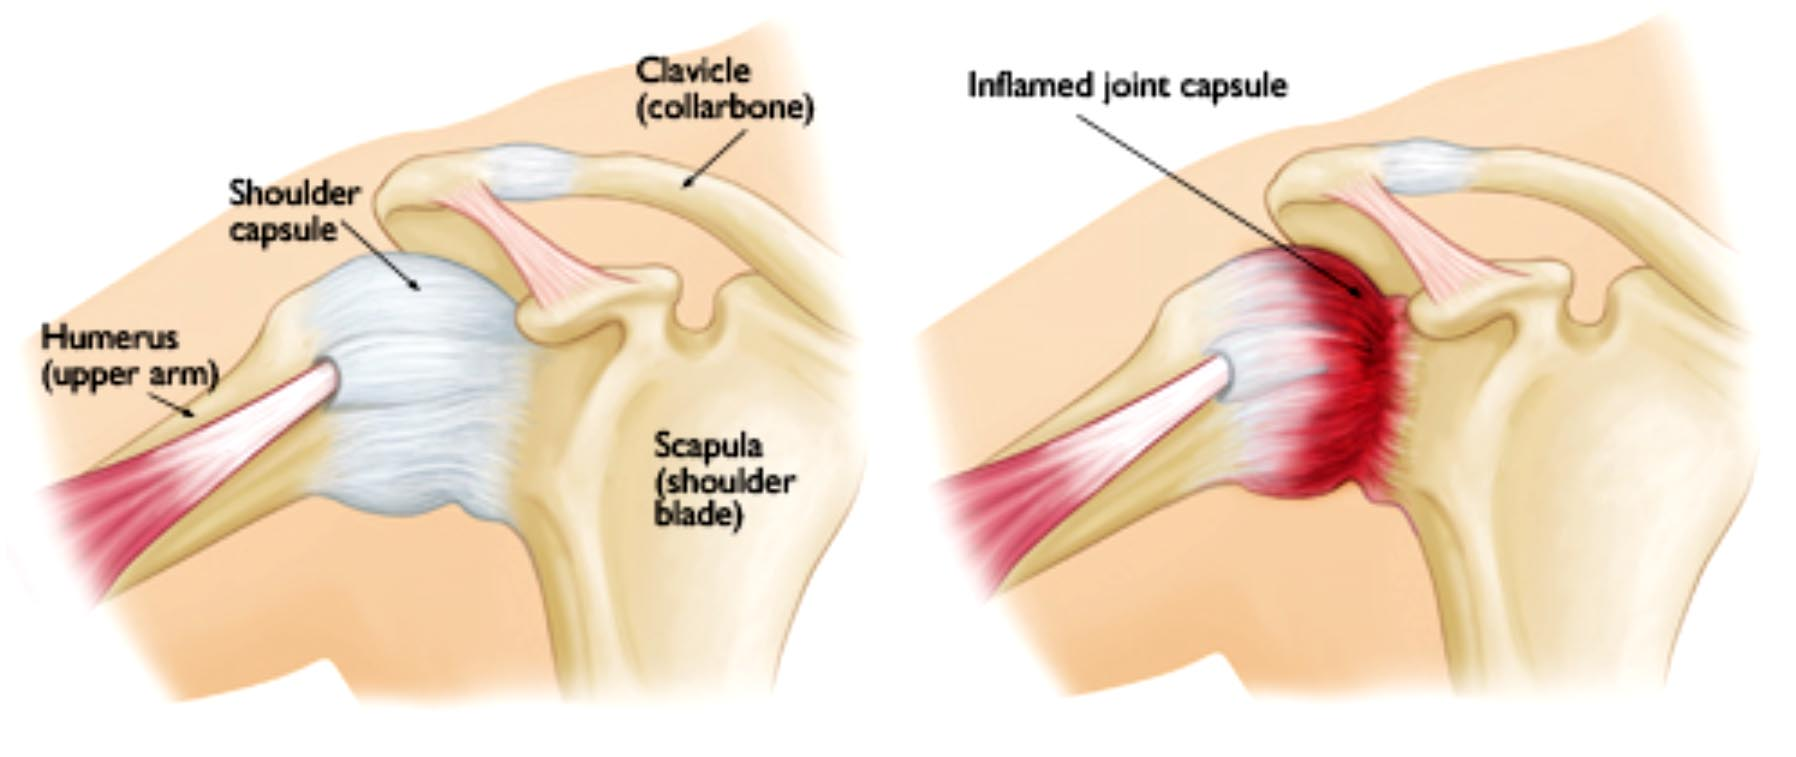 frozen shoulder Frozen shoulder is a very common occurrence in women between the ages of 40-60 years symptoms include stiffness, pain, and limited range of motion in your shoulder.